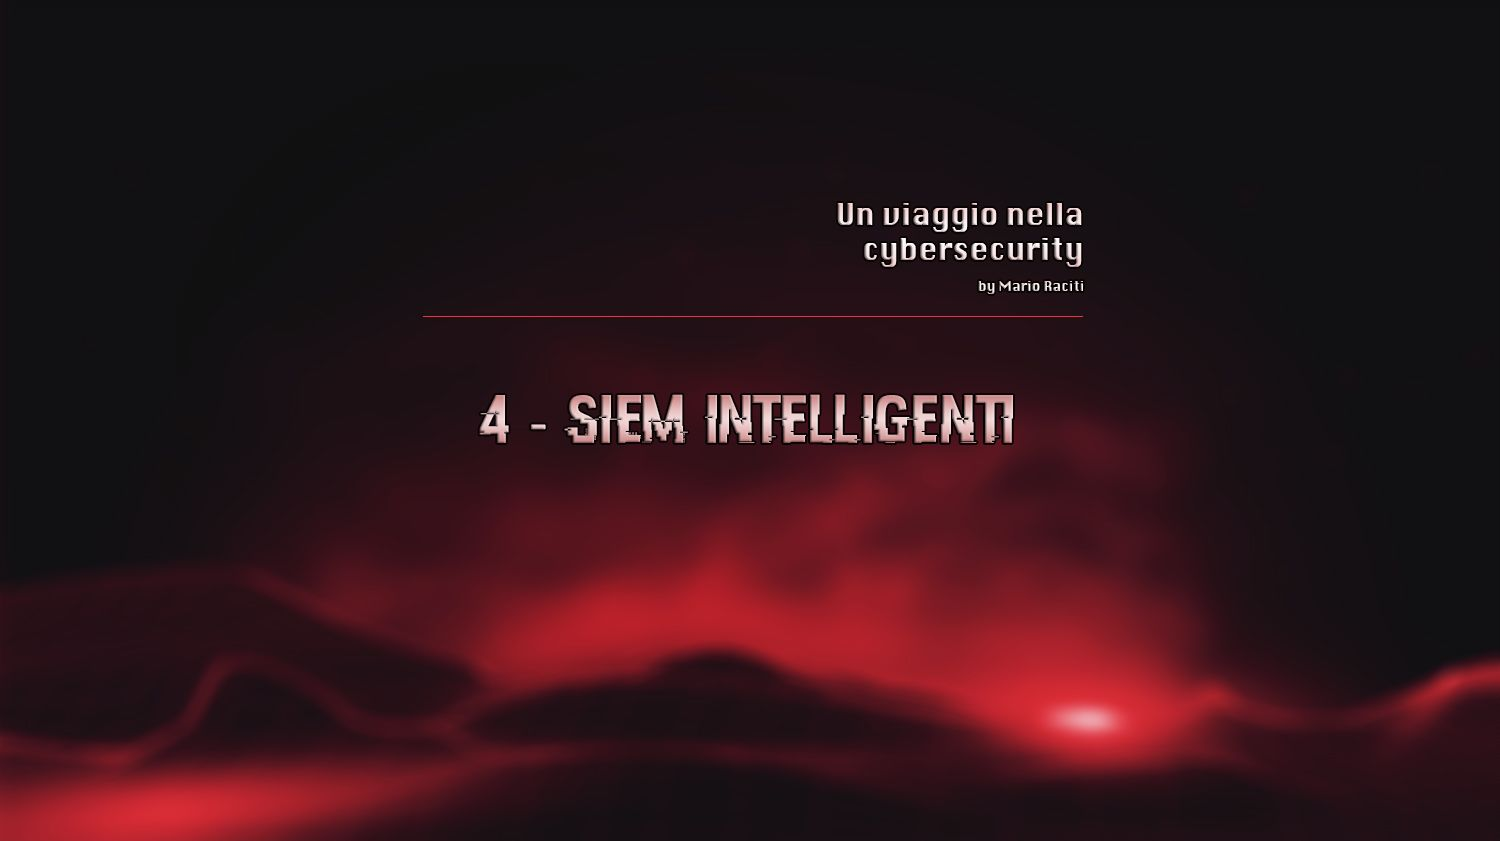 SIEM intelligenti